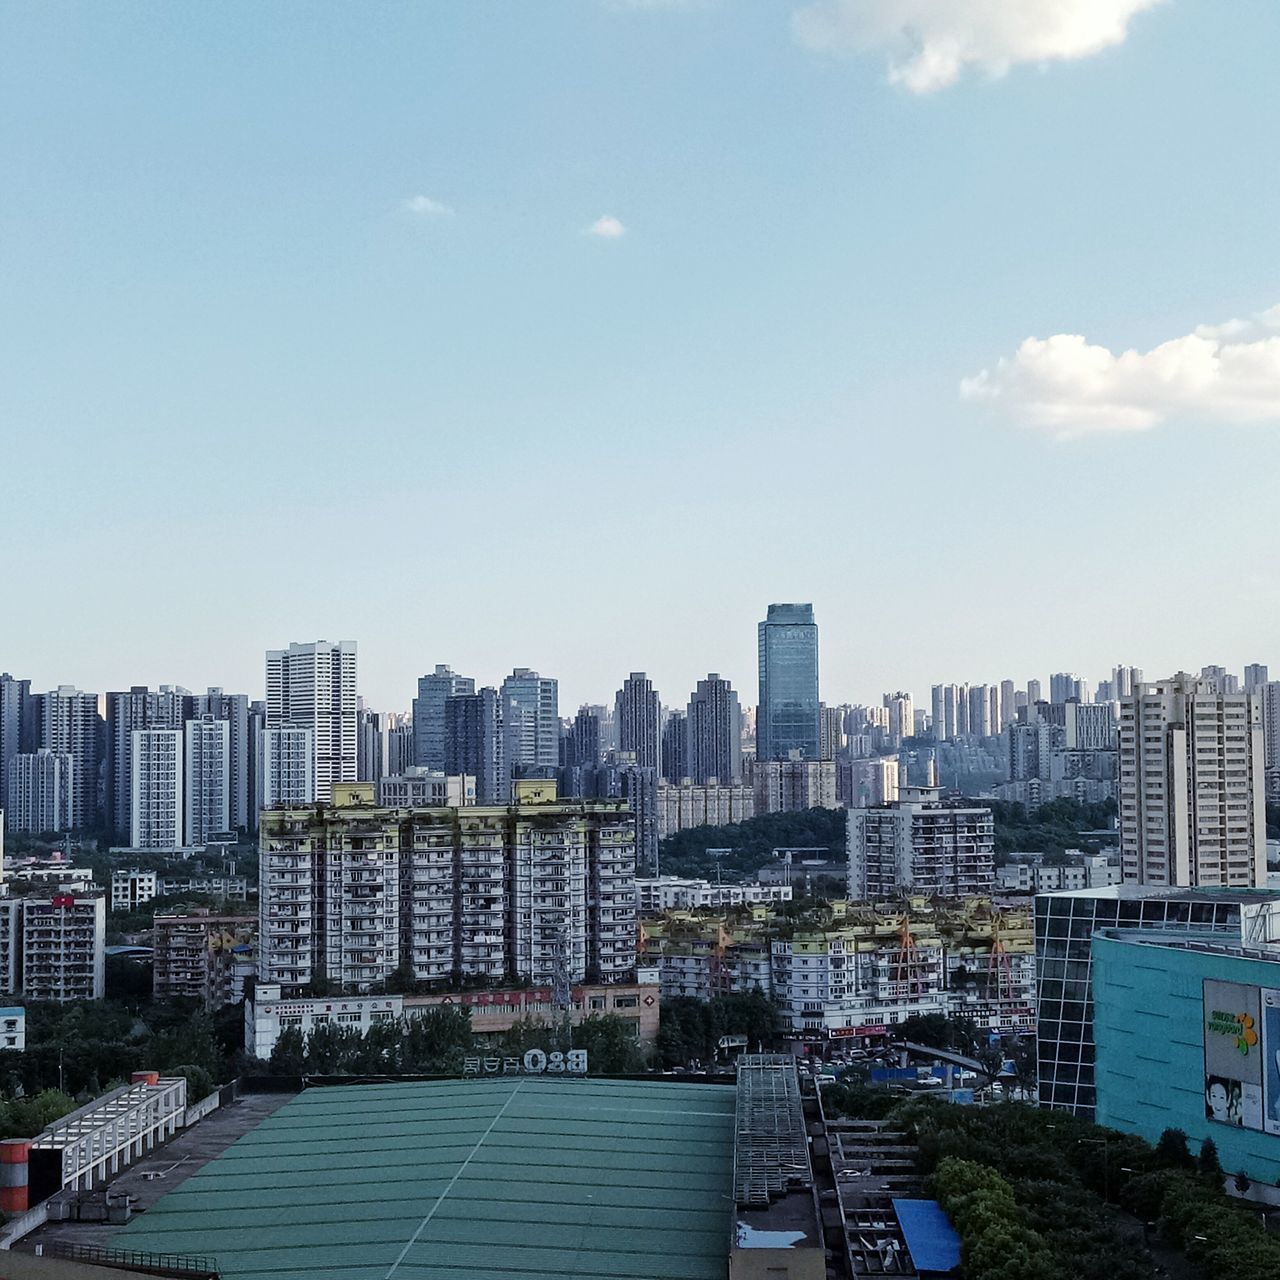 architecture, skyscraper, city, building exterior, built structure, cityscape, day, sky, outdoors, no people, urban skyline, modern, tree